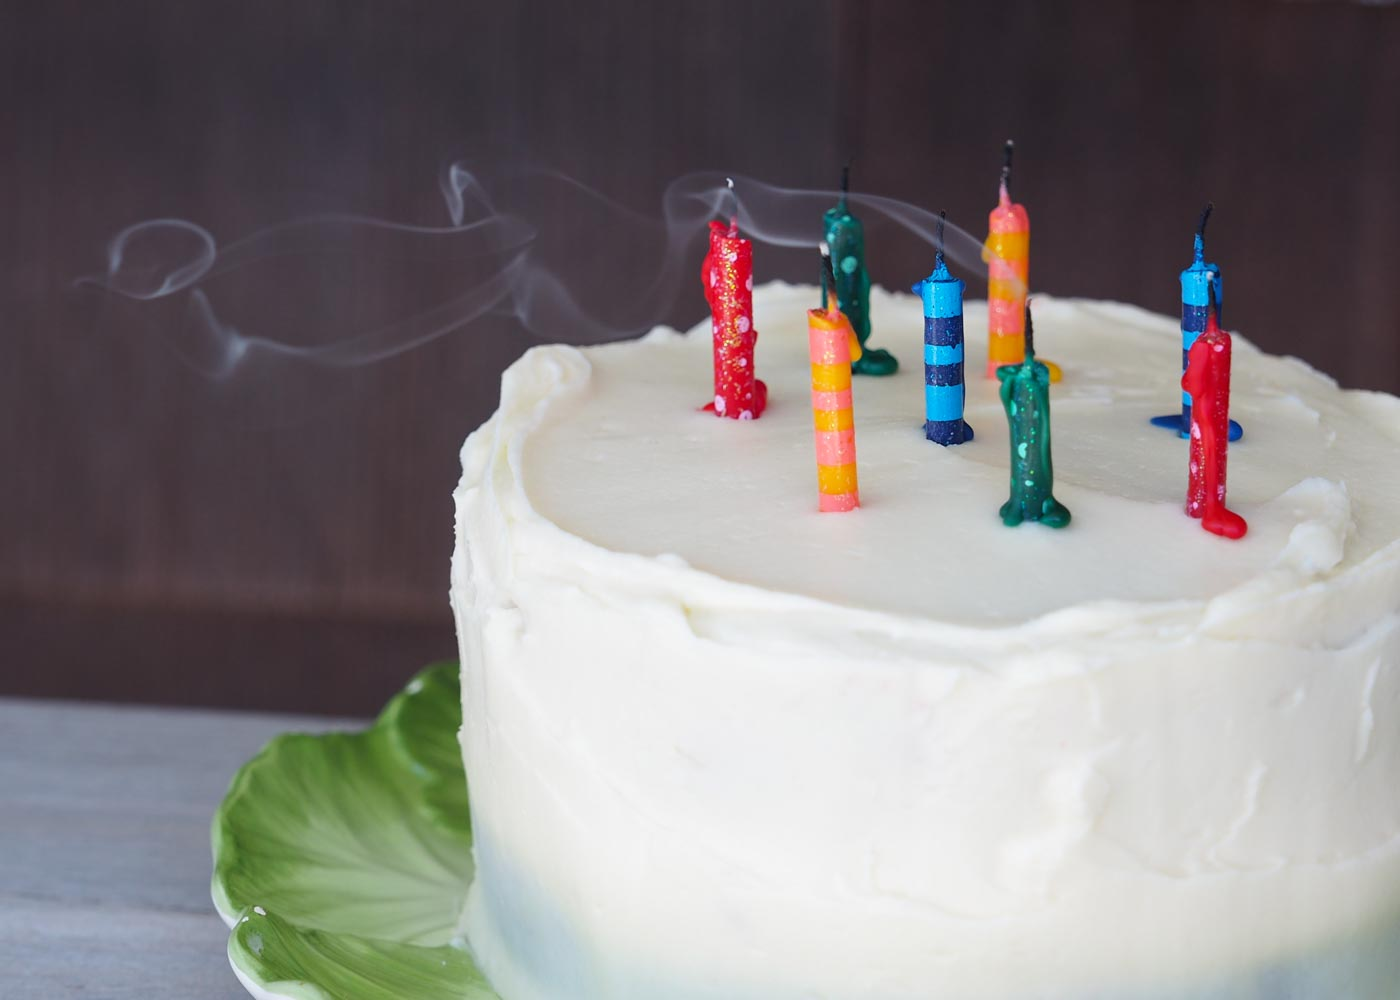 Papyrus' striped and spotted glitter candles on a red velvet cake.